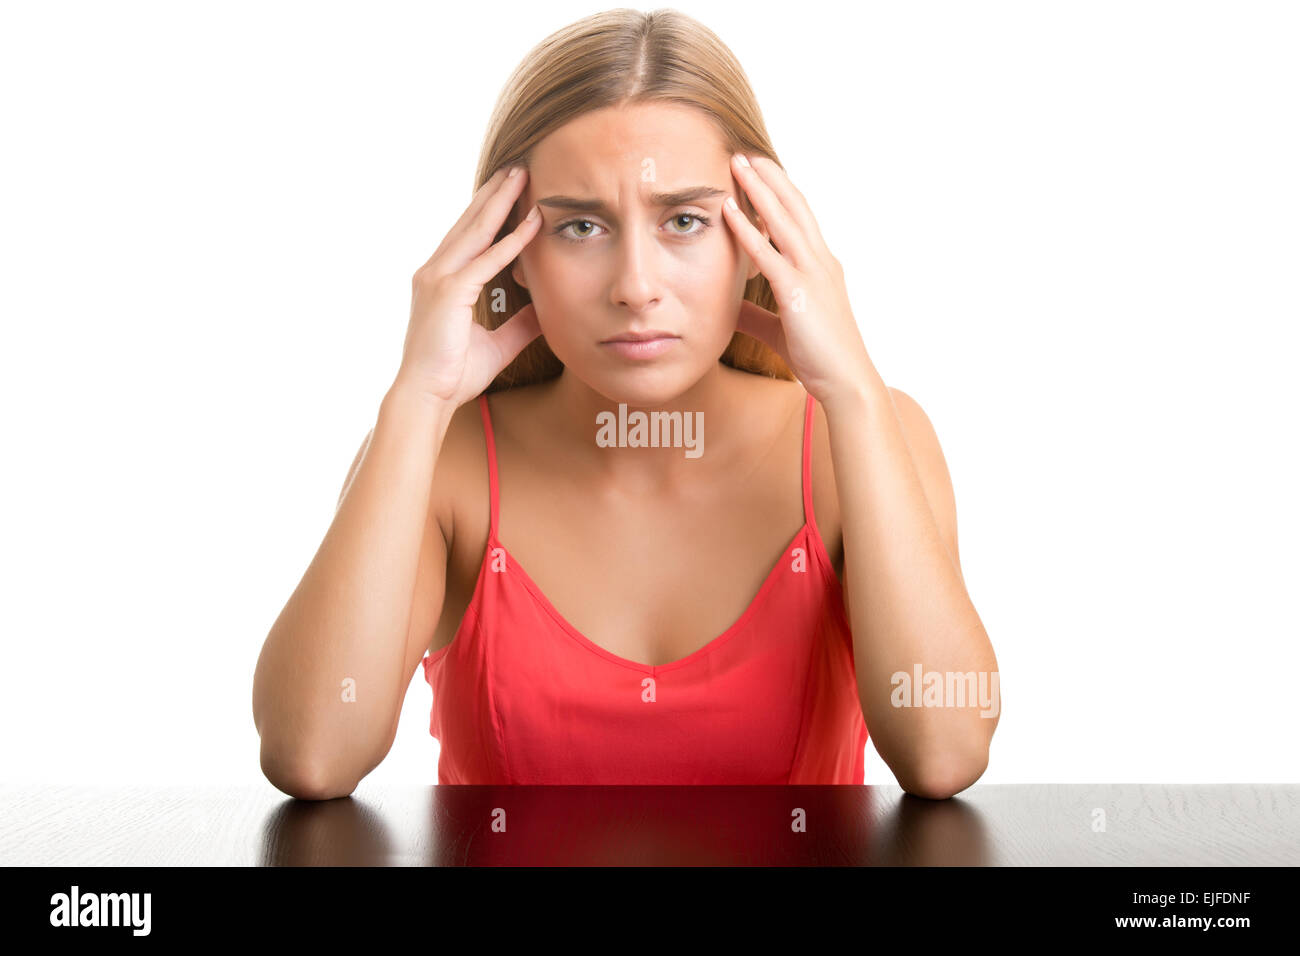 Woman suffering from an headache, holding her hand to the head, isolated in white - Stock Image